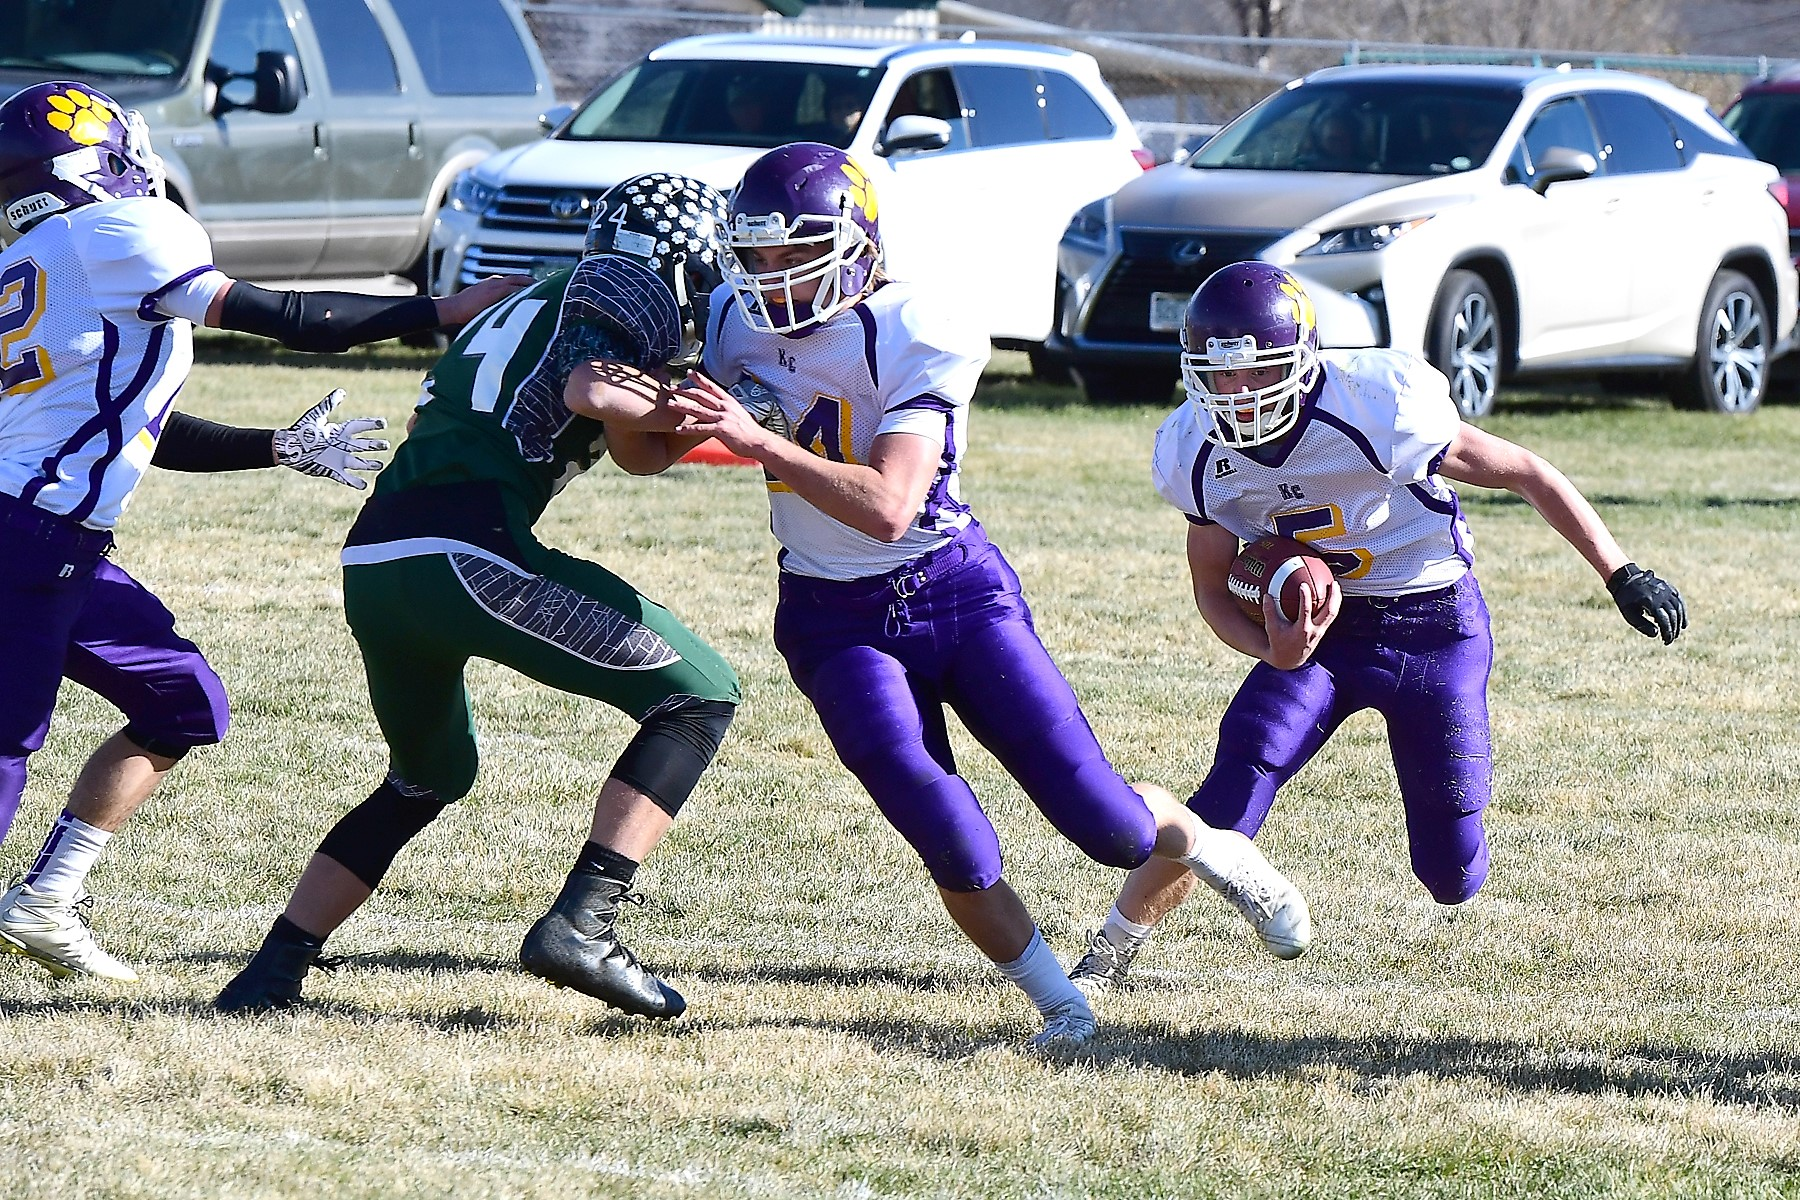 Kit Carson Wildcat Joe Bryan (5) carries the ball behind the blocking of teammate TJ Conway (14) in the 6-Man football quarterfinal game. Both players were named First Team All-Conference.